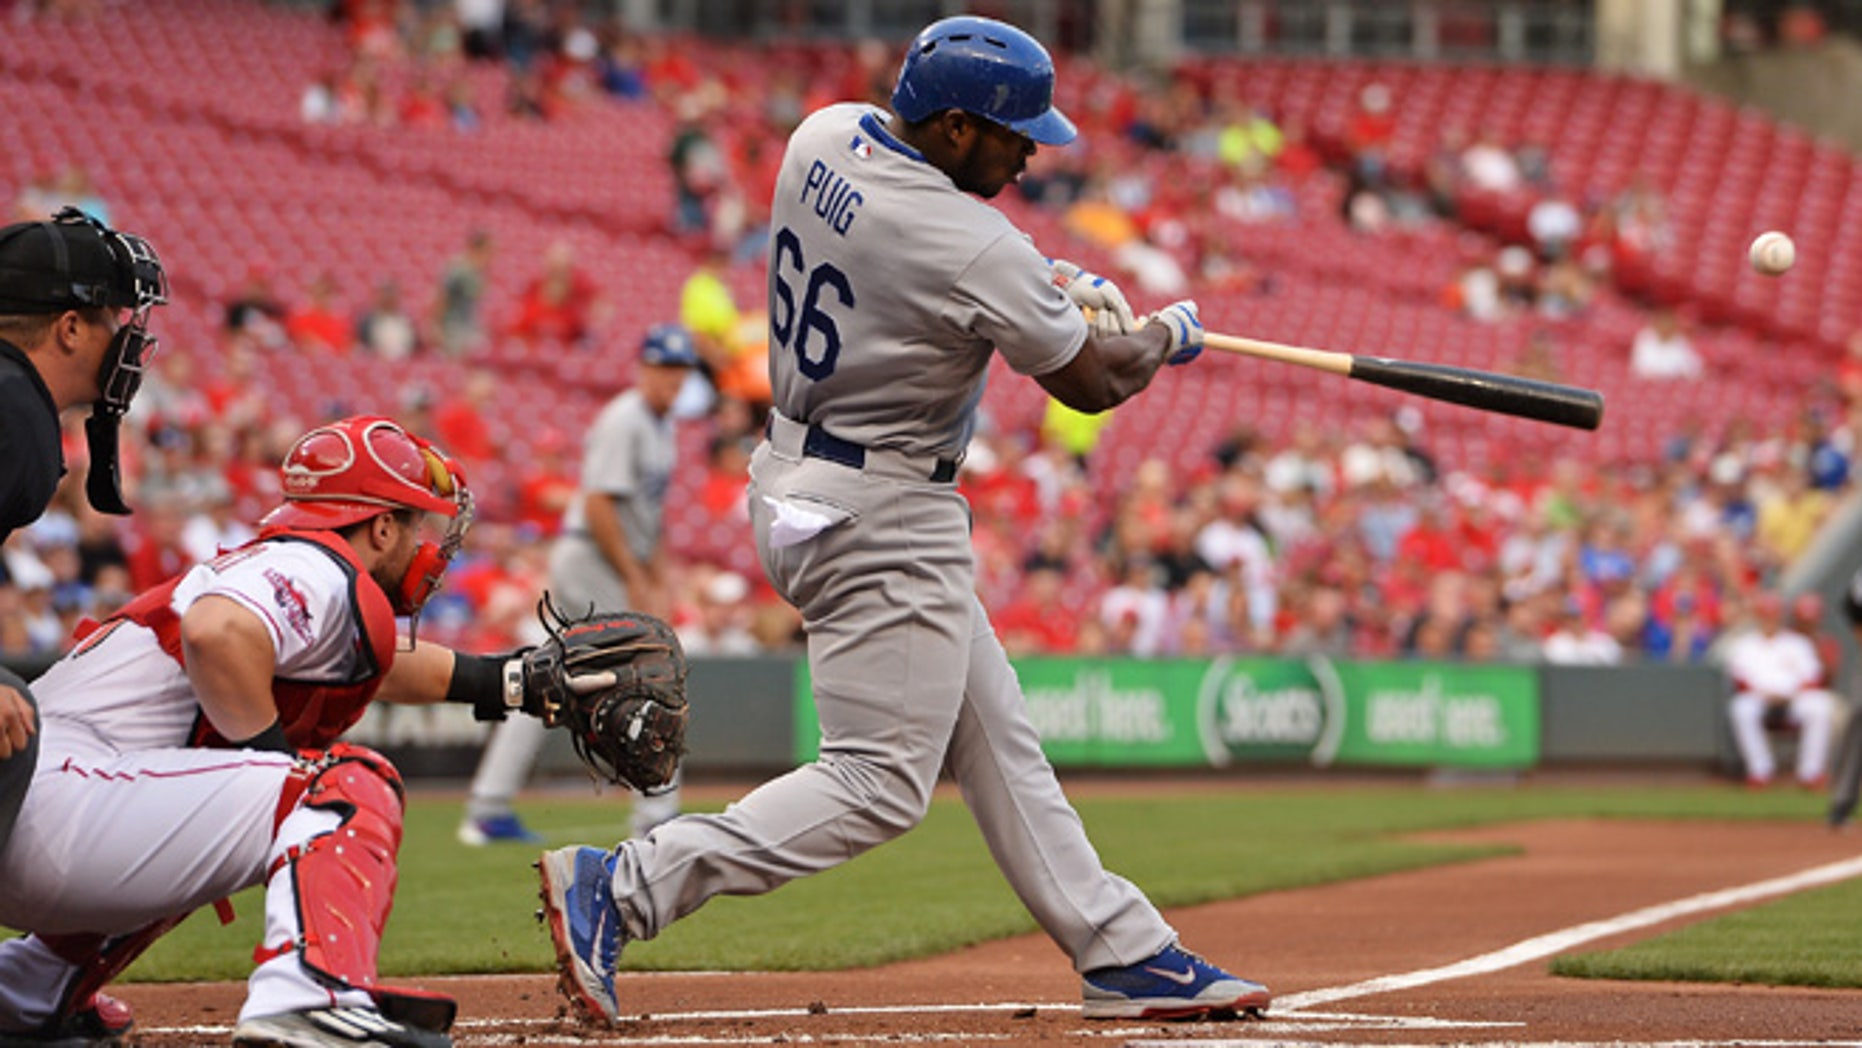 CINCINNATI, OH - AUGUST 25:  Yasiel Puig #66 of the Los Angeles Dodgers hits an RBI double in the first inning against the Cincinnati Reds at Great American Ball Park on August 25, 2015 in Cincinnati, Ohio.  (Photo by Jamie Sabau/Getty Images)